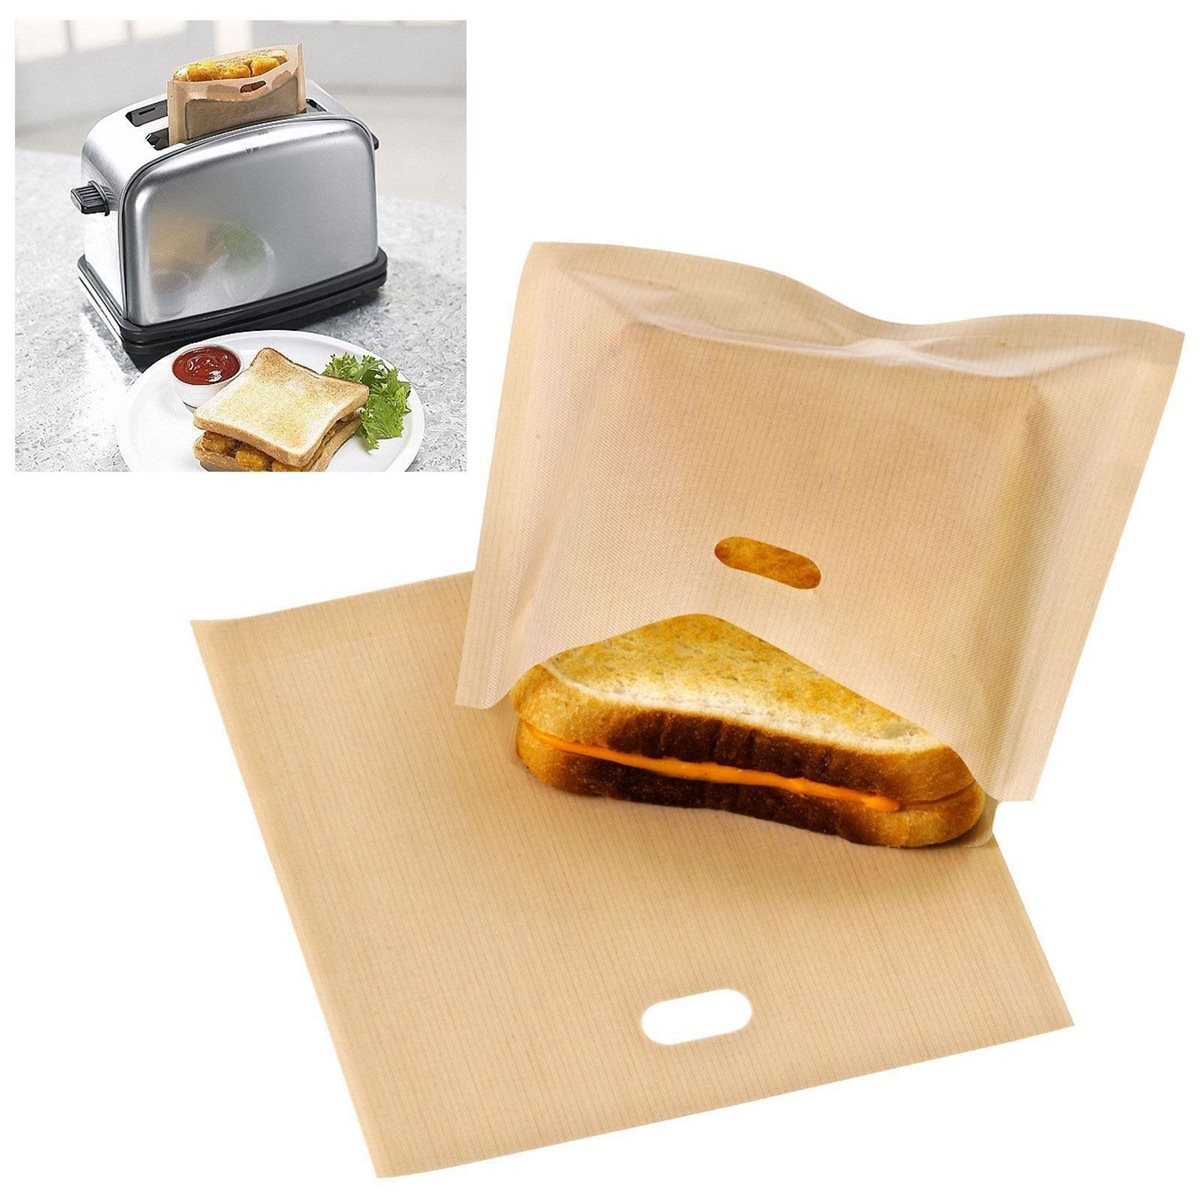 Reusable Pastry Tools Sandwich Bags Toaster Bag Non Stick Bread Bag PTFE Coated Fiberglass Toast Microwave Heating 16*16.5CM(China (Mainland))